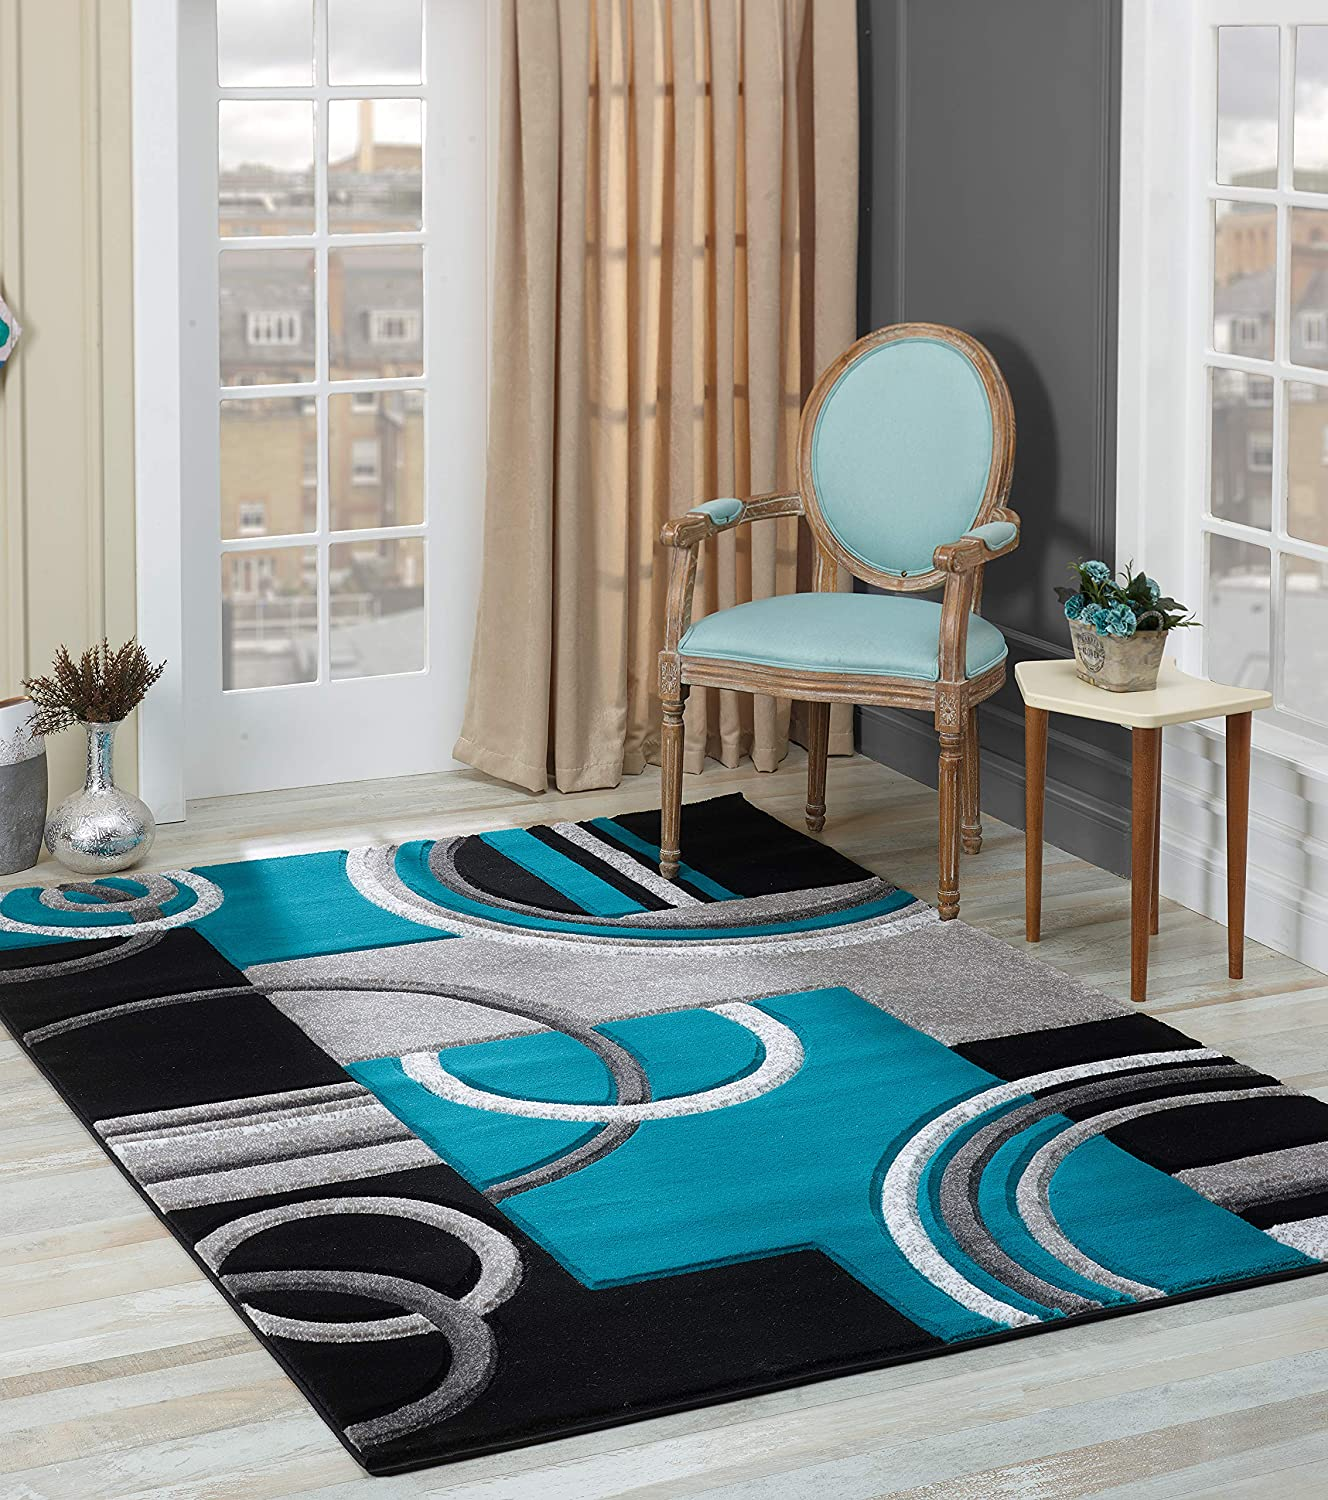 Golden rugs soft black turquoise hand carved modern contemporary 52 x 75 floor rug with premium fluffy texture for indoor living dining room and